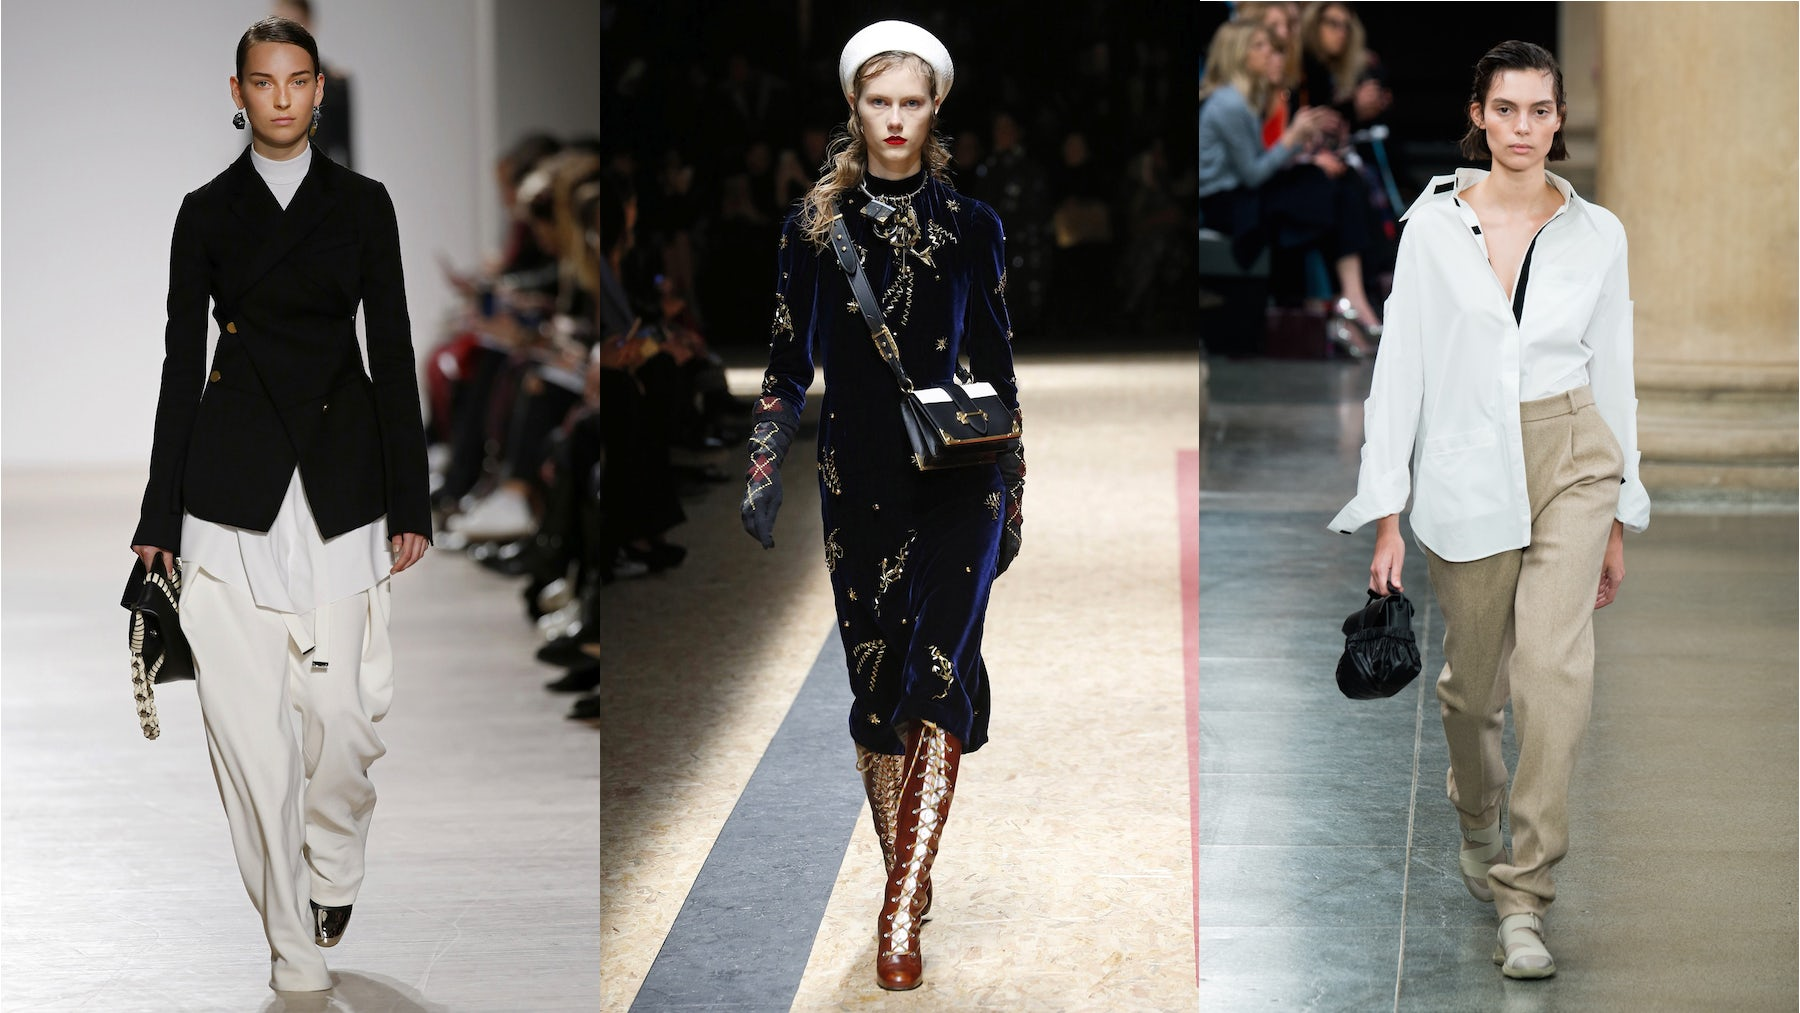 (R-L) Proenza Schouler Autumn/Winter 2016, Prada Autumn/Winter 2016, Christopher Kane Autumn/Winter 2017. All three brands made limited items from their collections available to purchase immediately. | Source: InDigital.tv